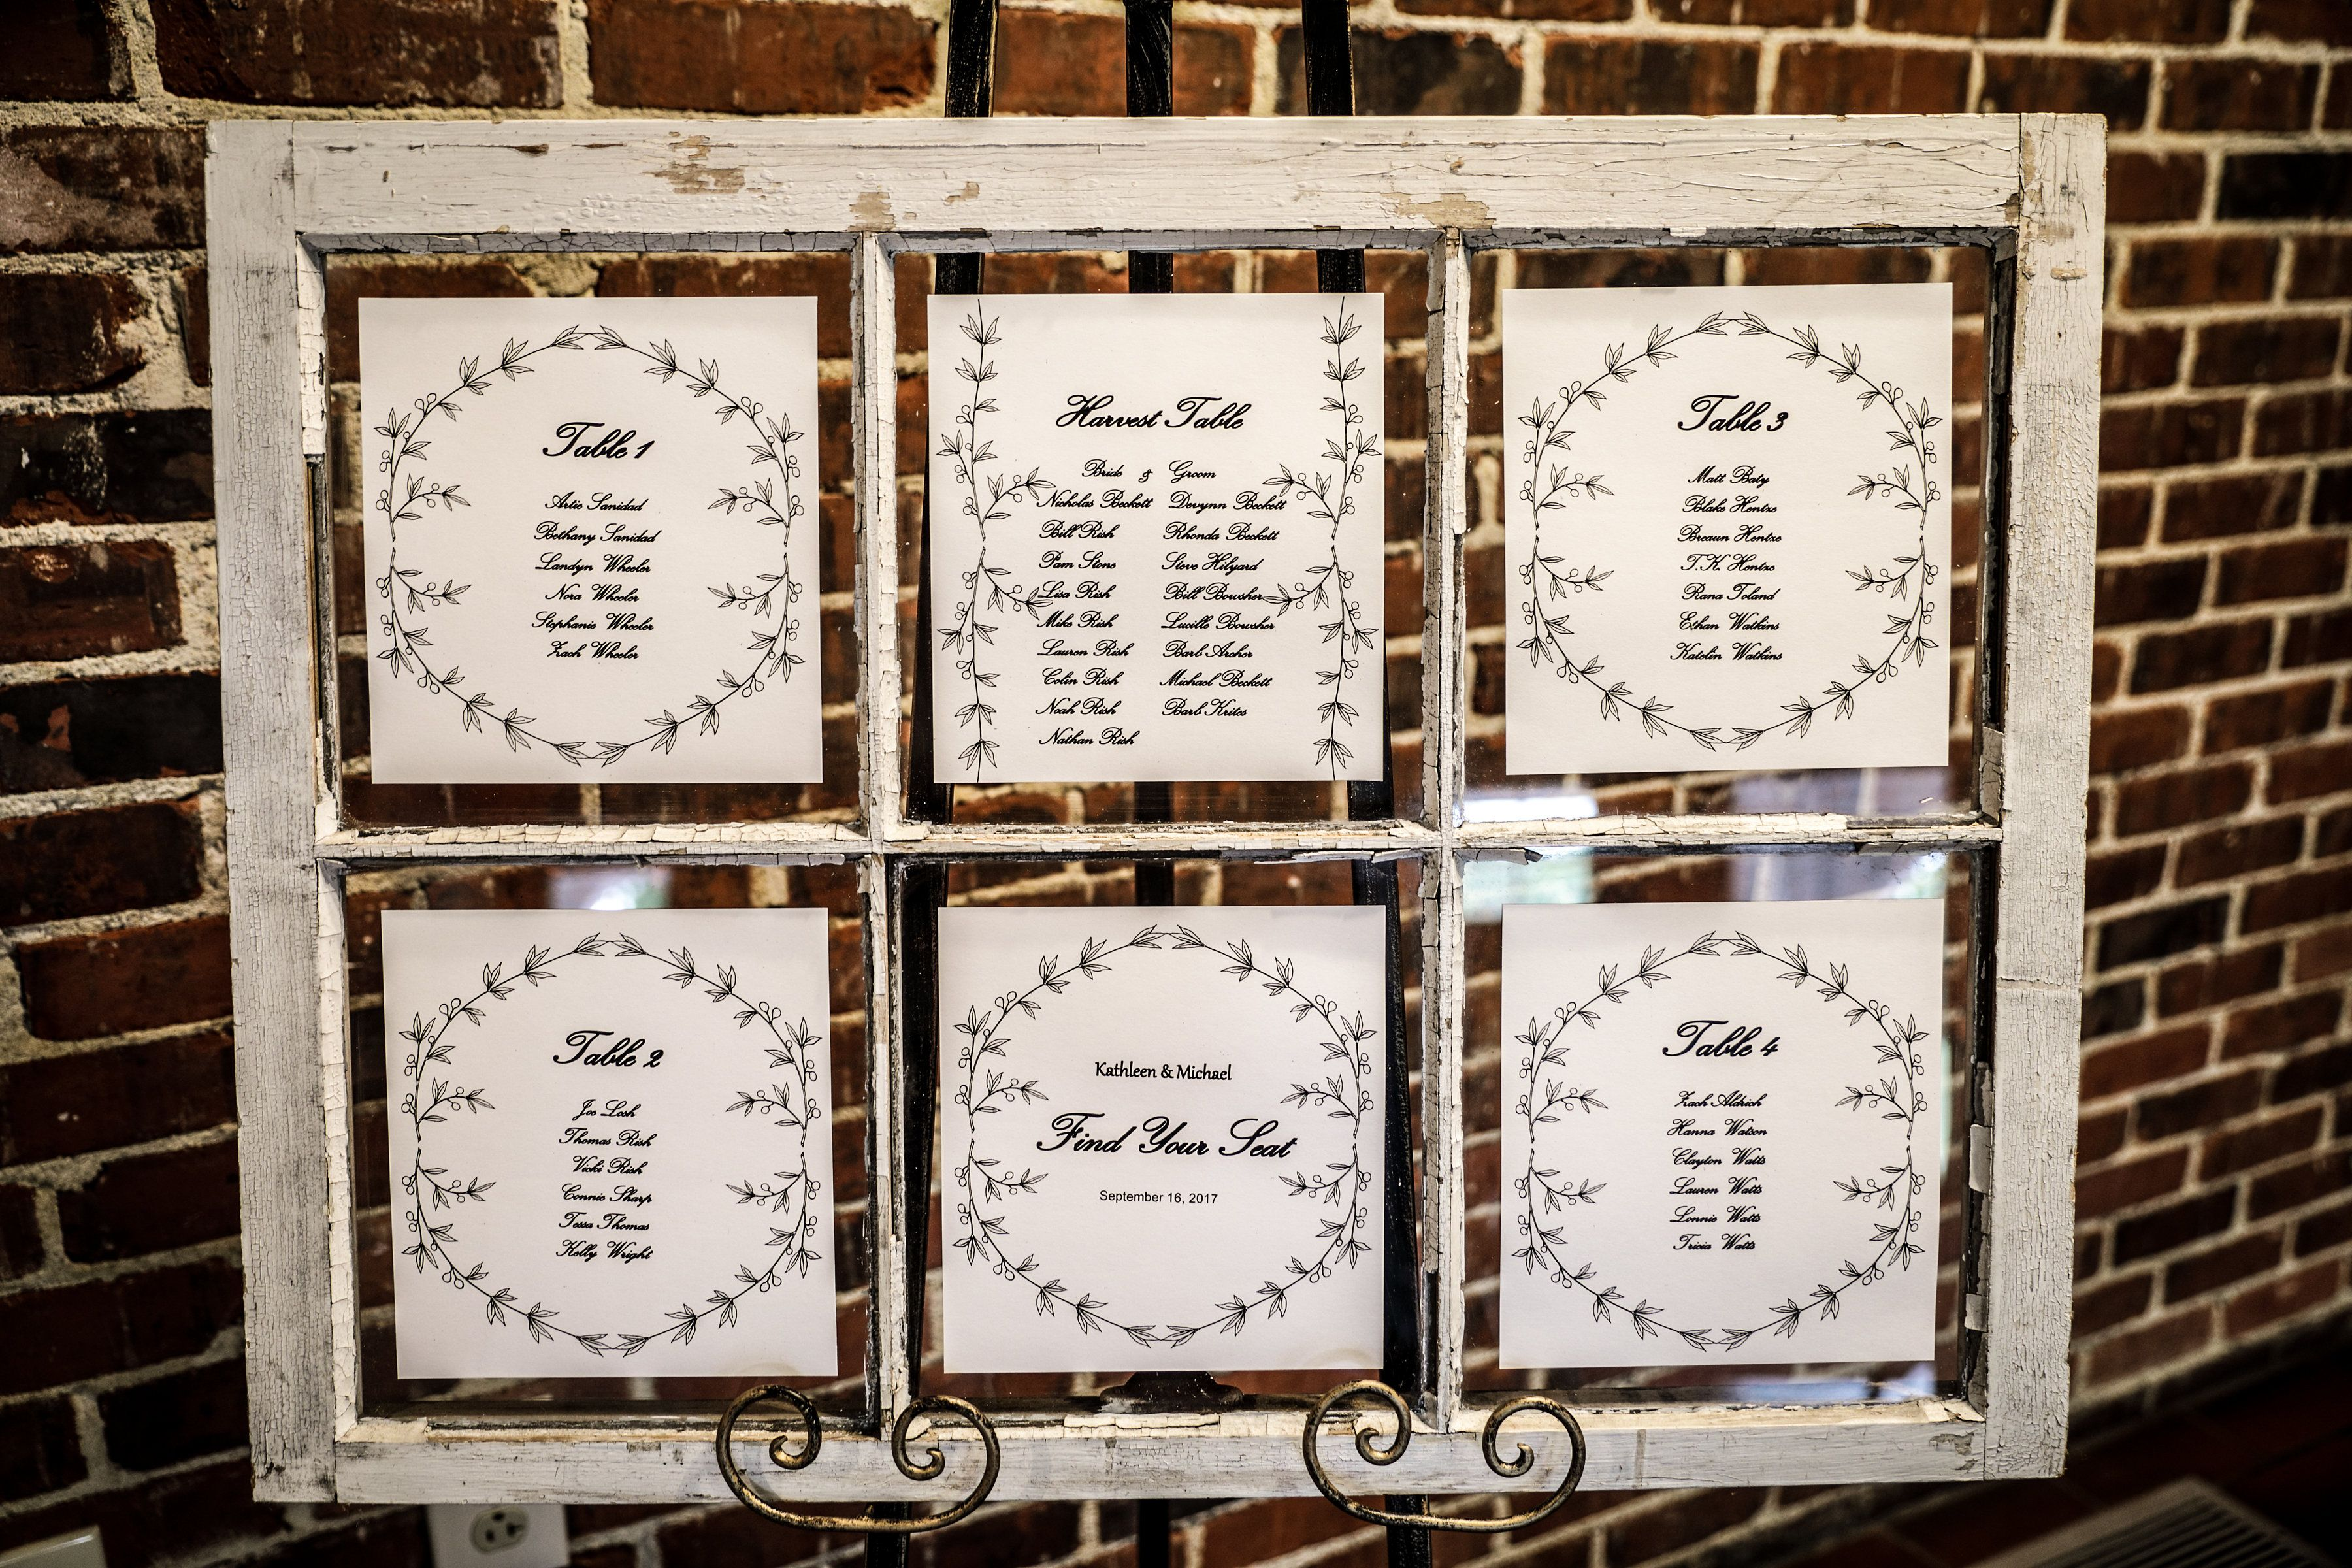 Free Printable Seating Chart Wedding Seating Chart In A Rustic Window Framei Used A Free .